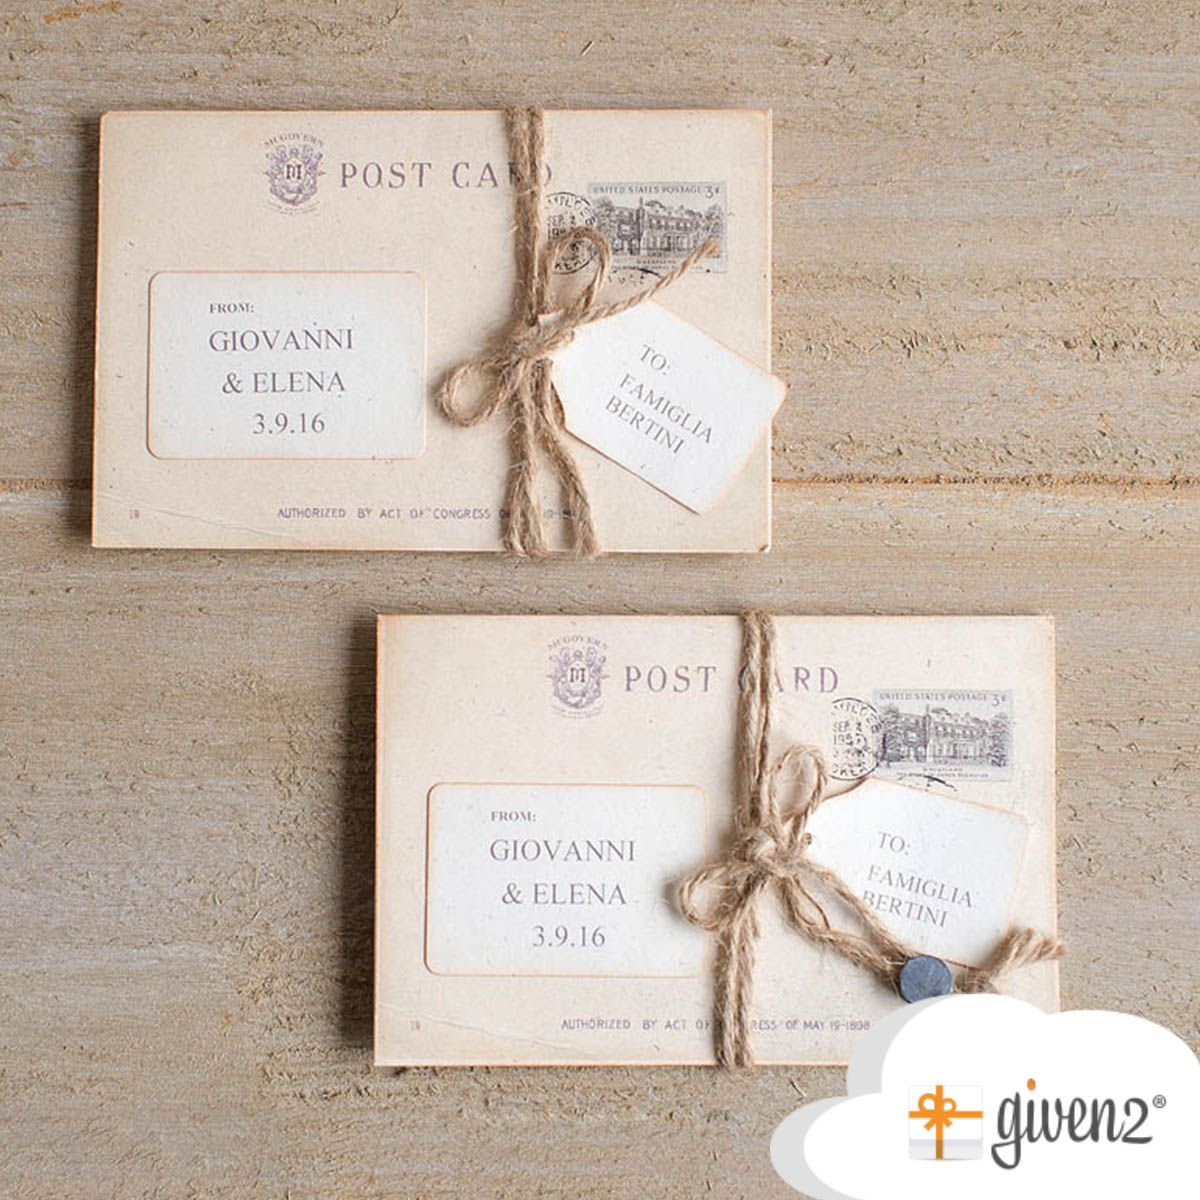 The wedding invitations, considered by some to be very